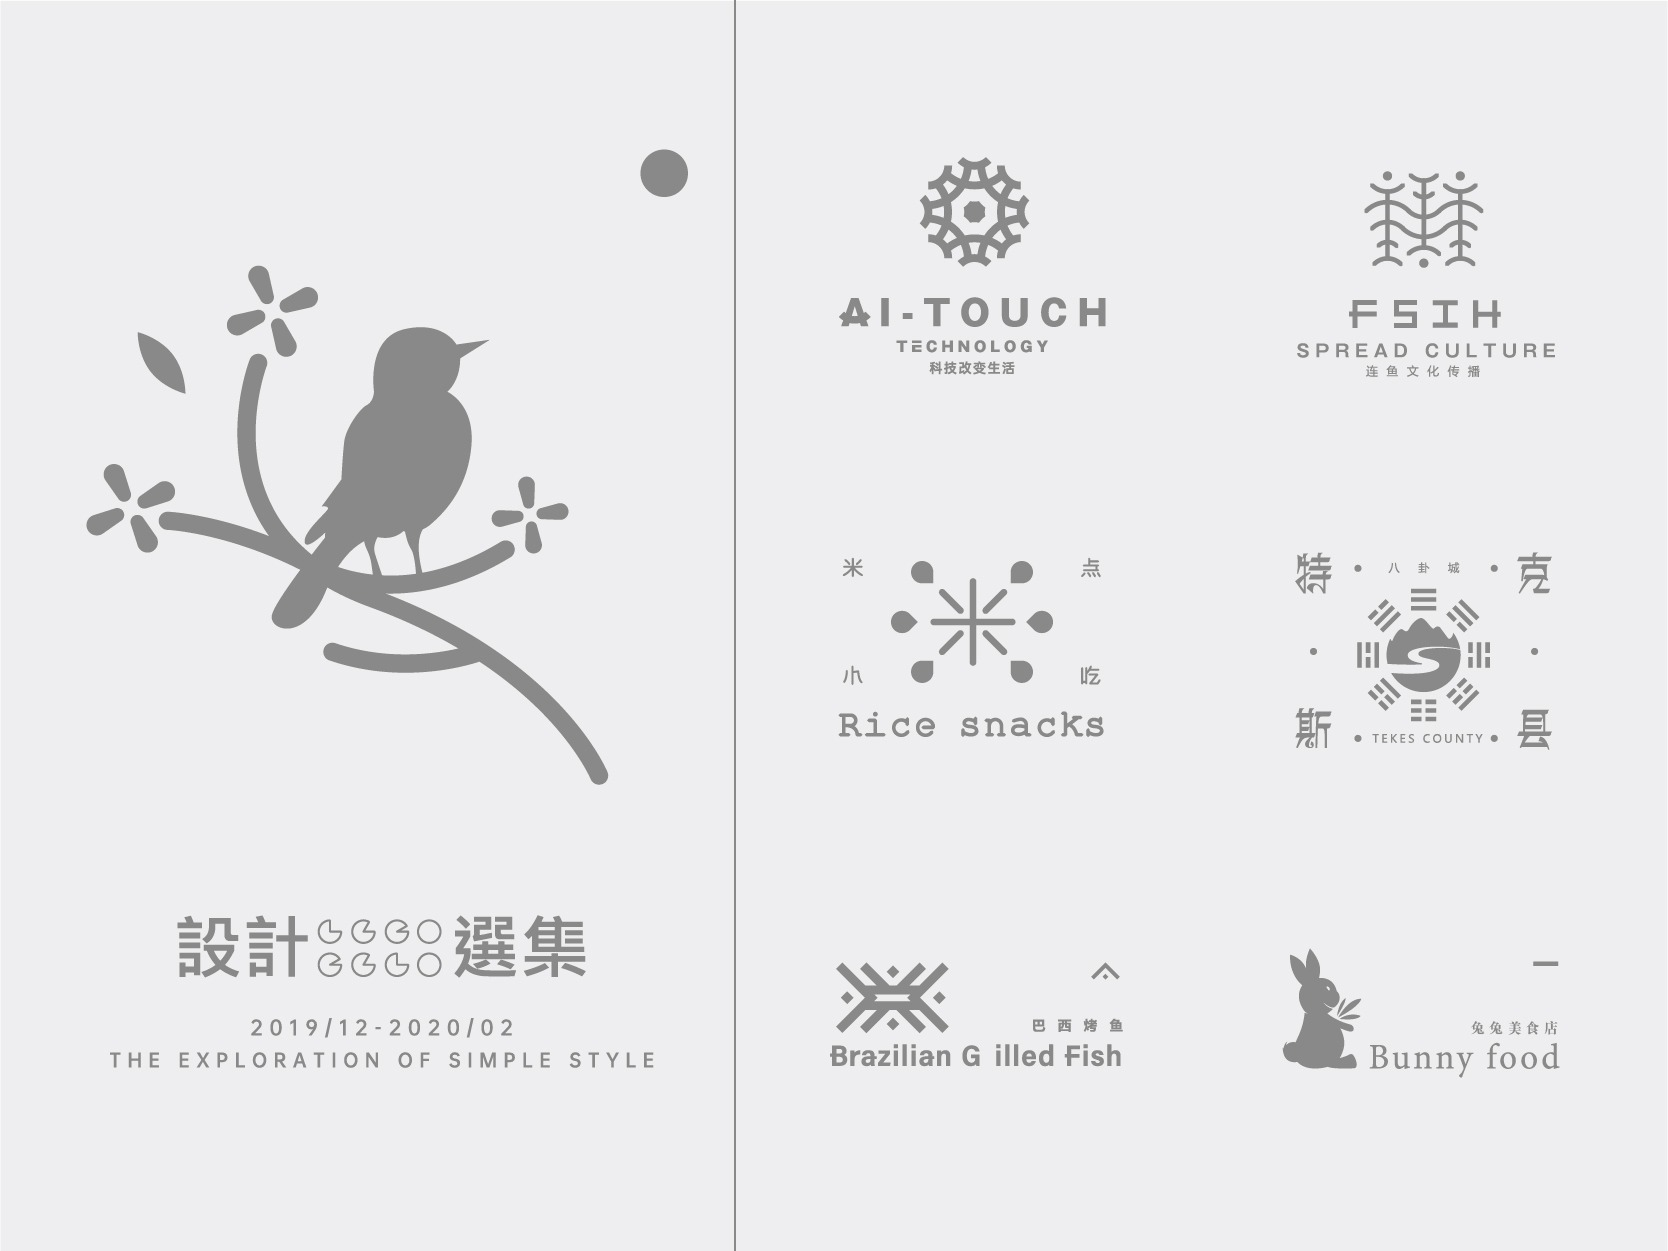 Clever layout of fonts and spaces